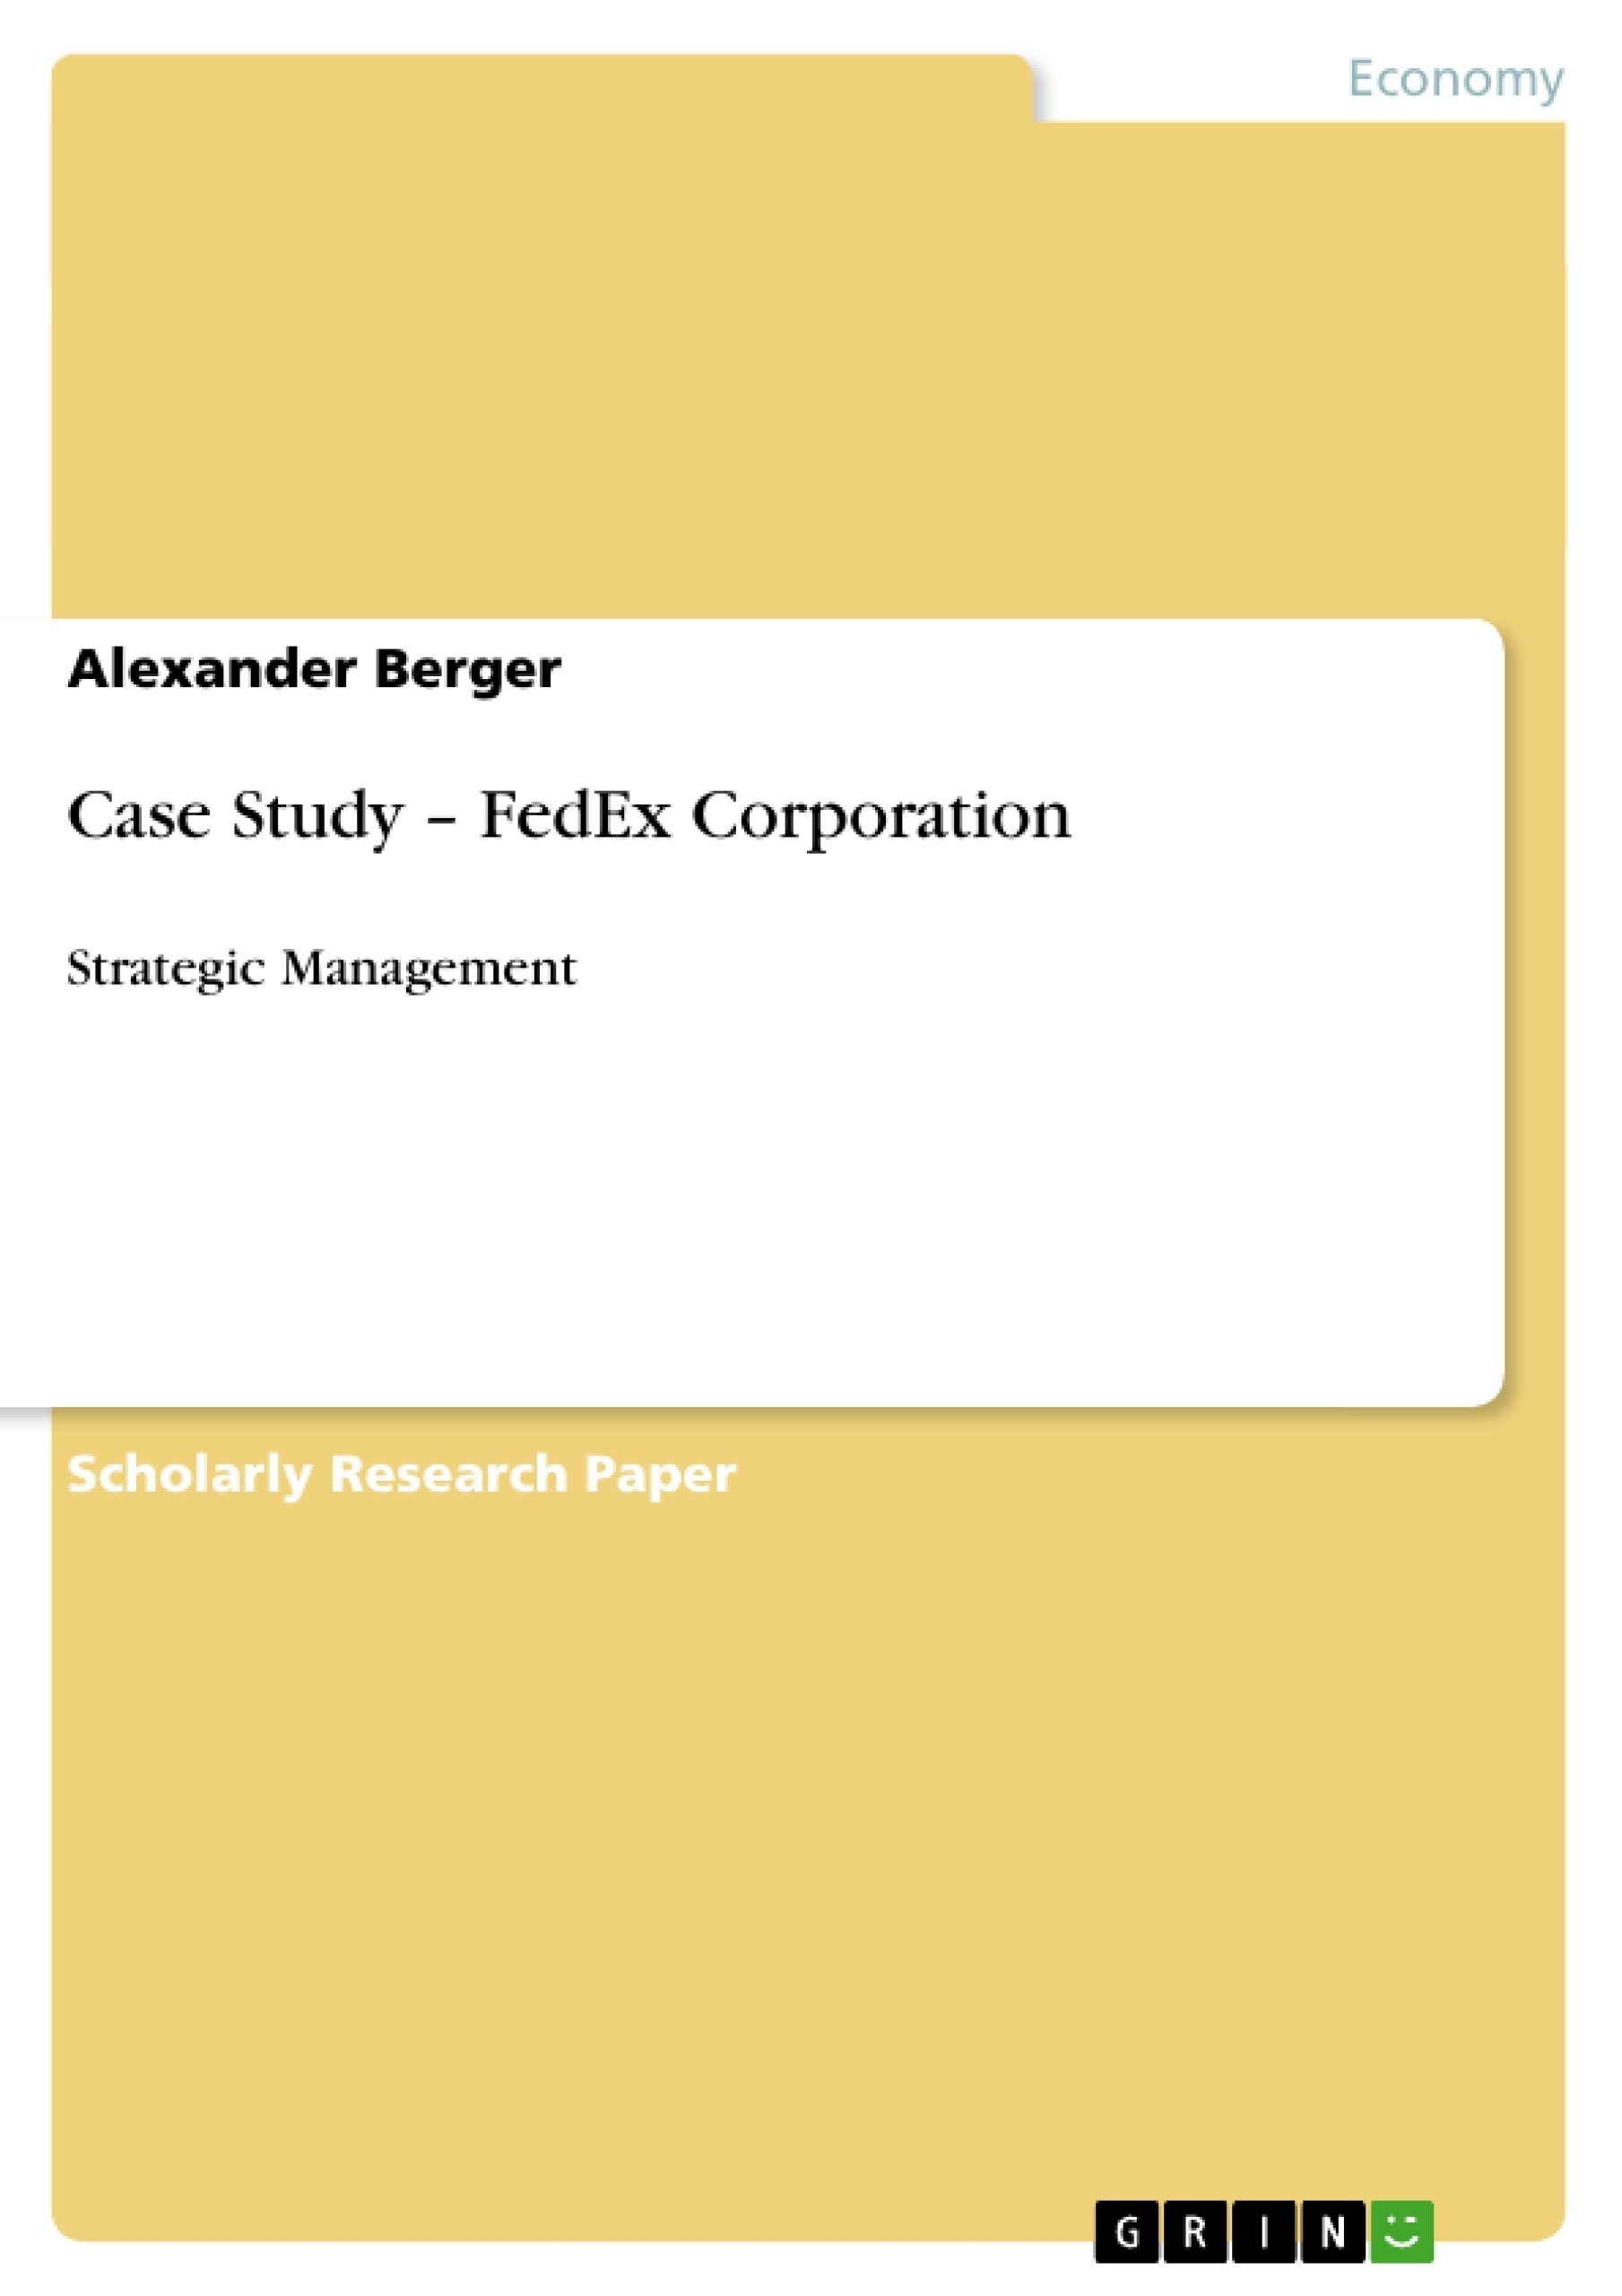 Title: Case Study – FedEx Corporation